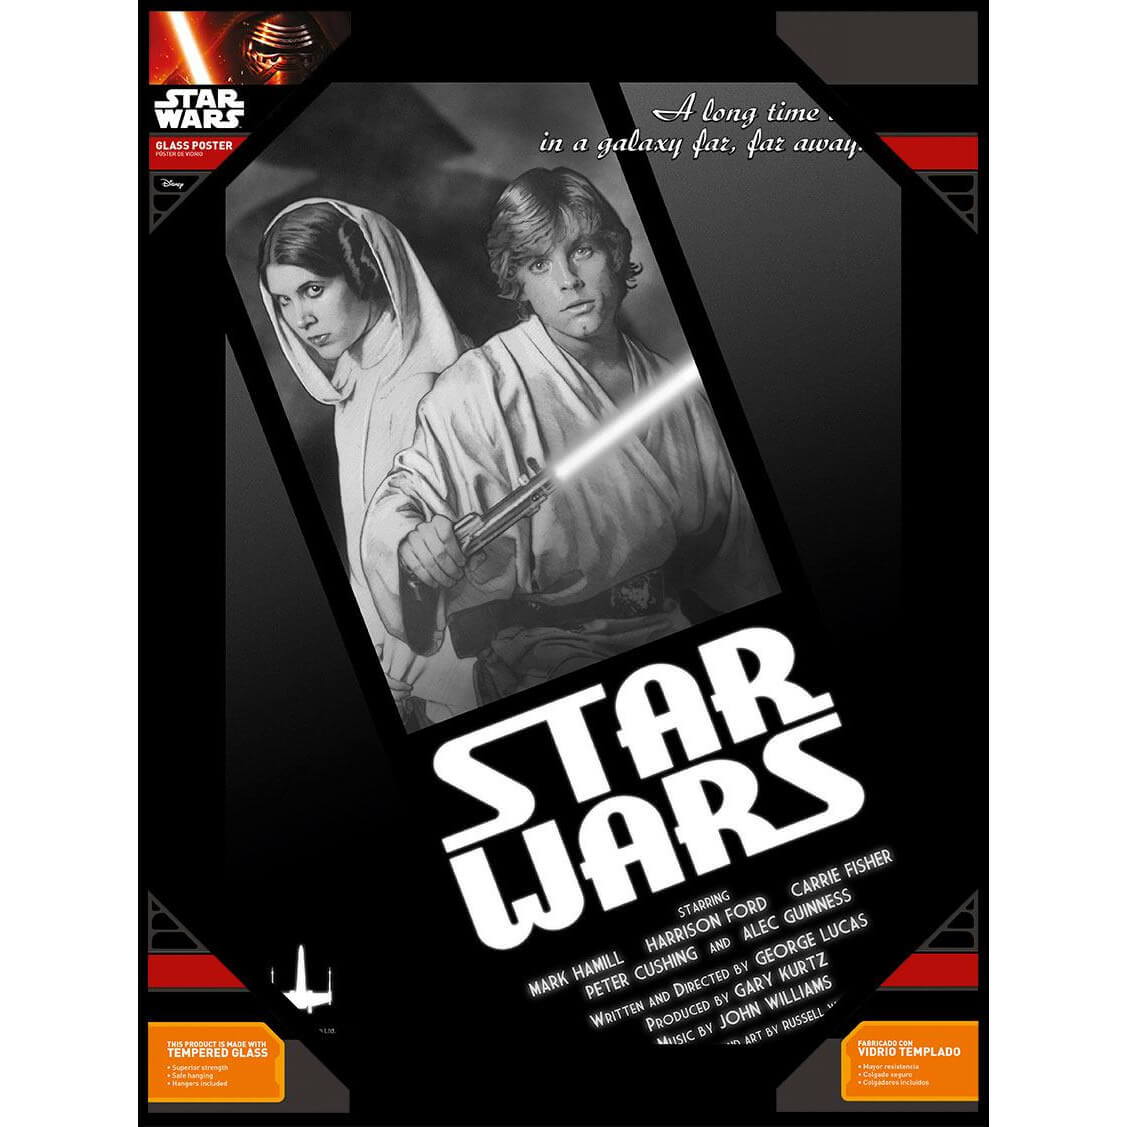 Star Wars Glass Poster - Luke Skywalker and Princess Leia in Black and White (30 x 40cm)